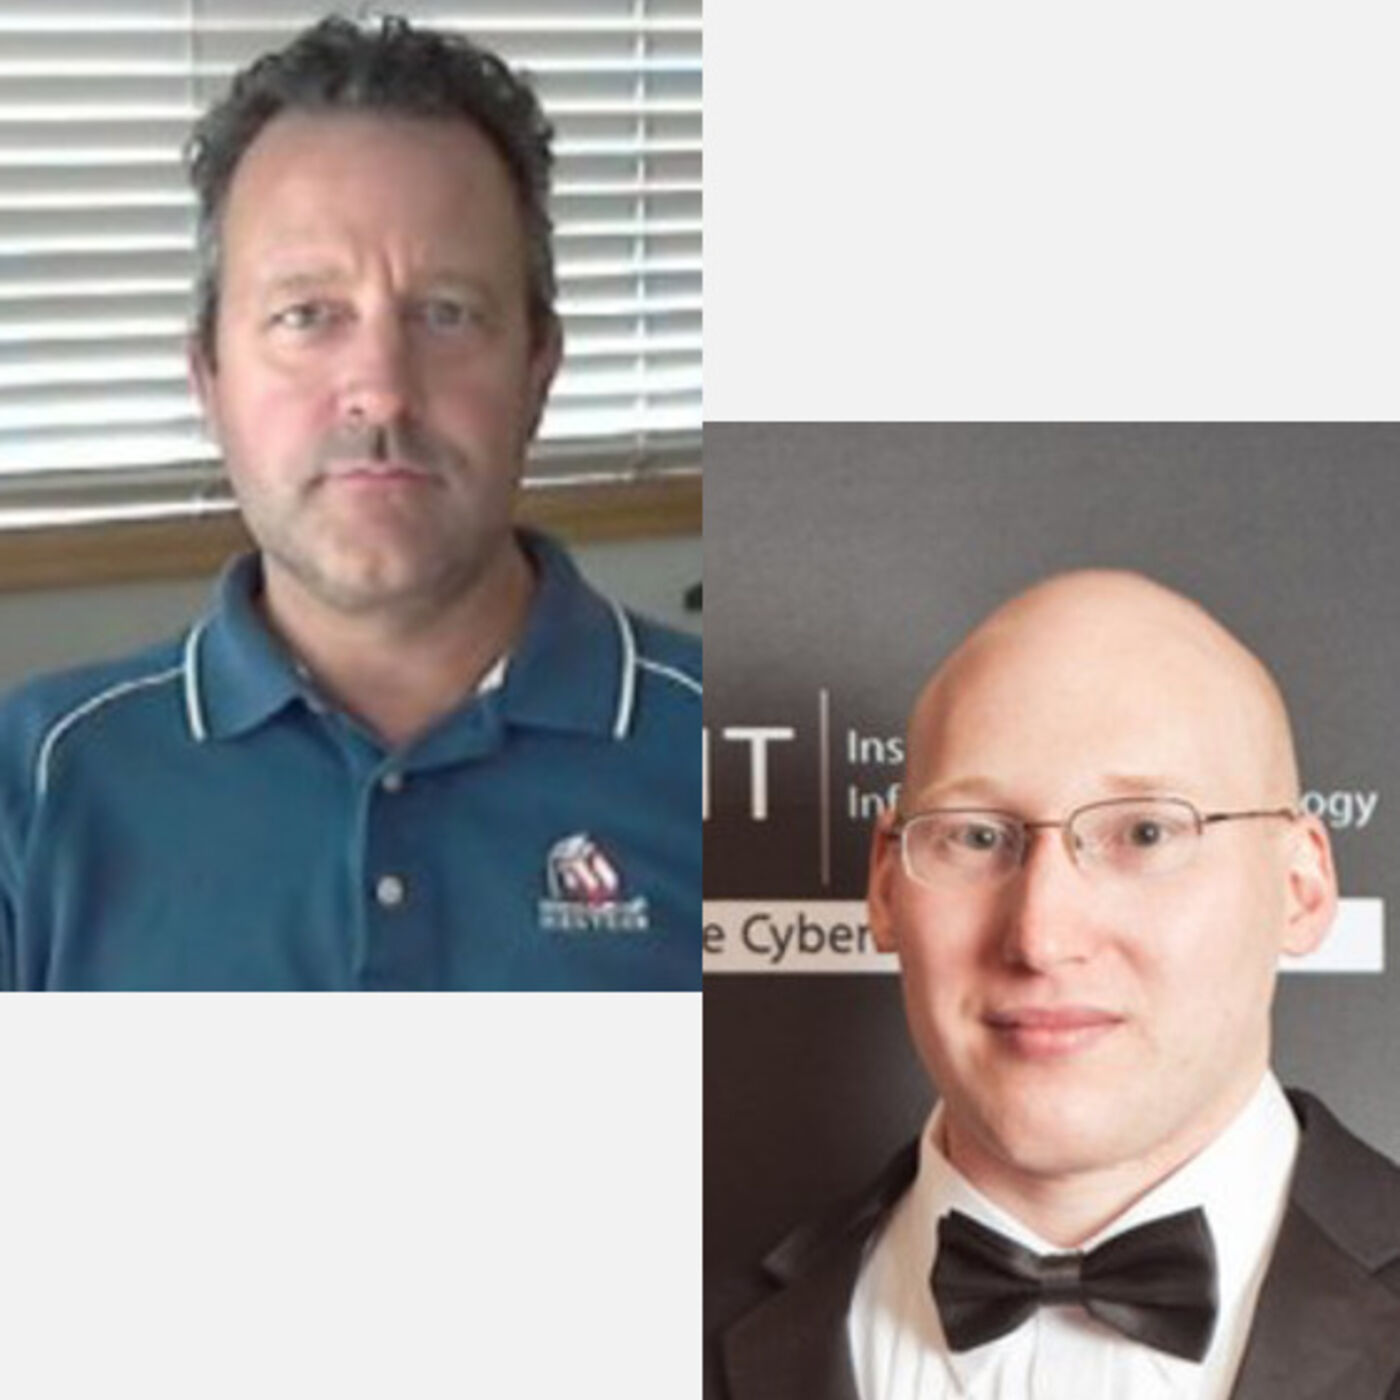 #28 - Culture of IoT Cyber Security - Drew Spaniel, ICIT and James Russell, Microchip Technology